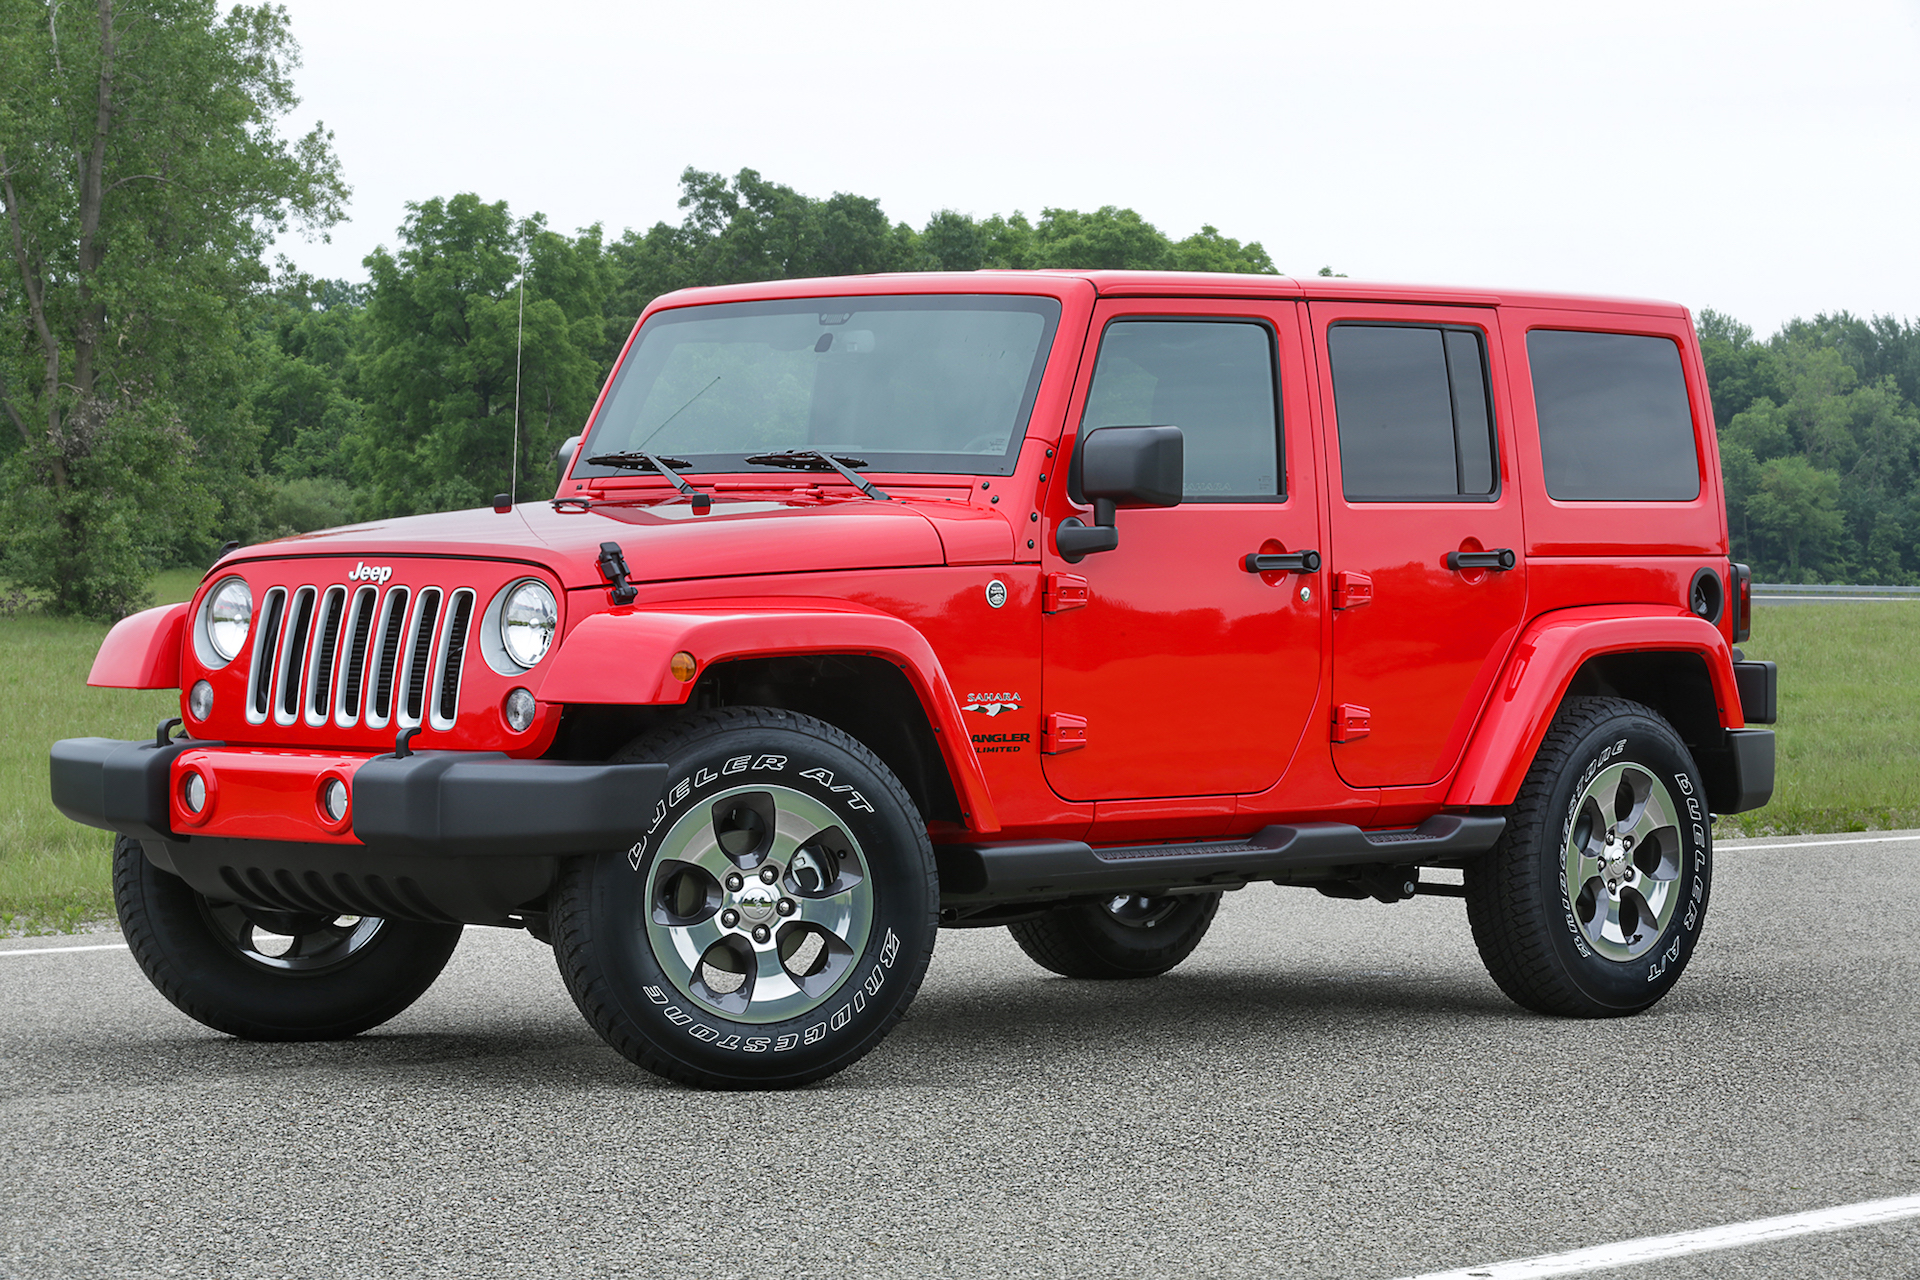 Feds bust motorcycle gang that stole 150 Jeep Wranglers